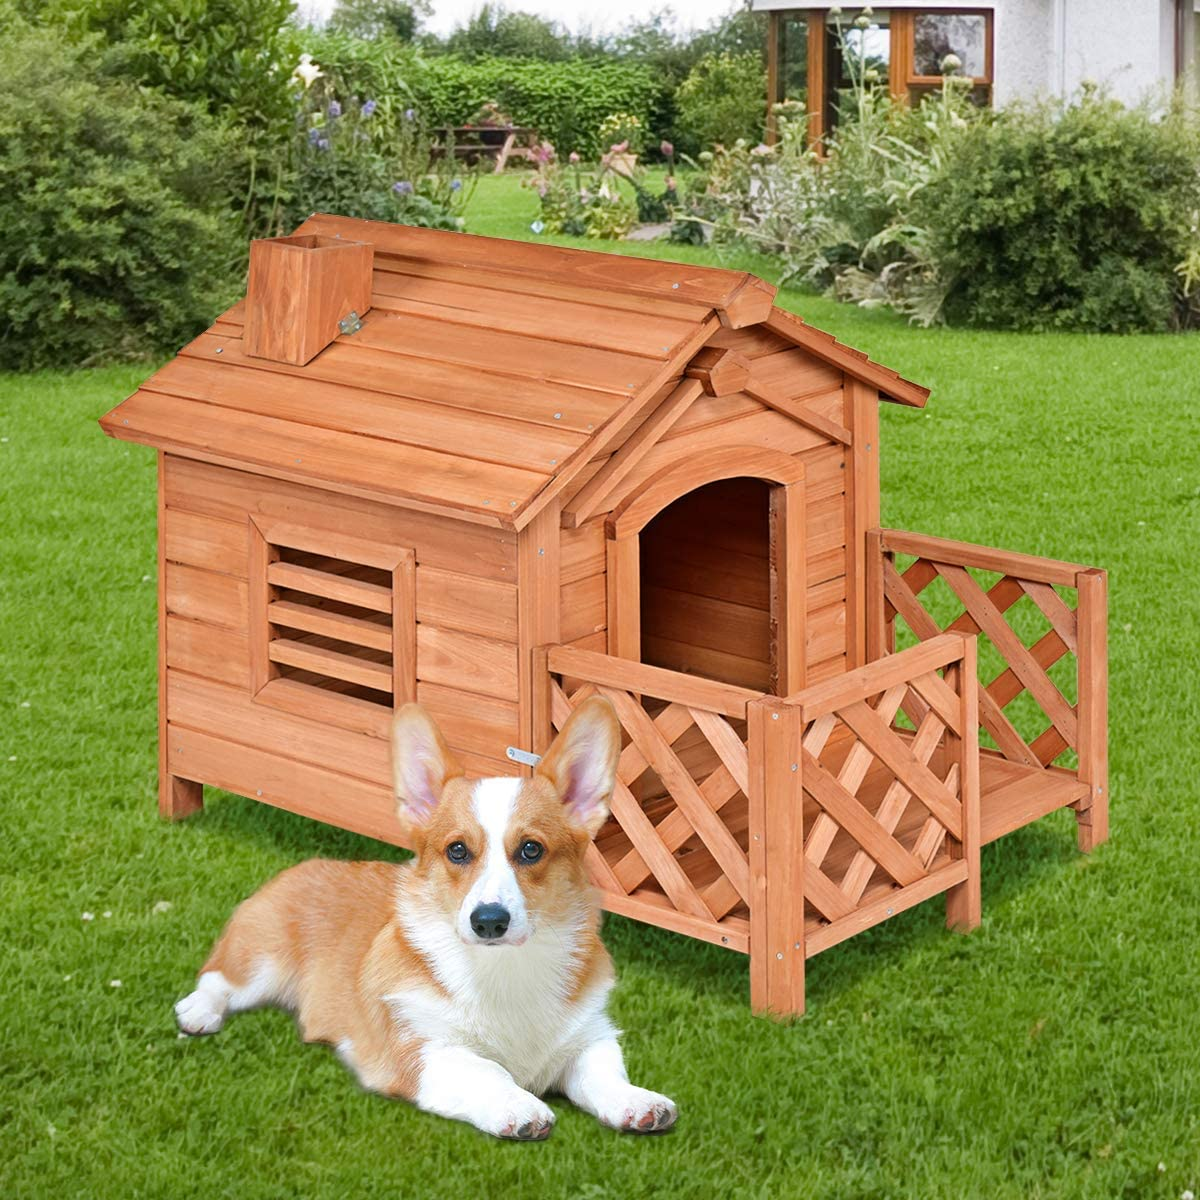 Tangkula Pet Dog House, Wooden Dog Room with Porch Fence, Raised Vent and Balcony for Outdoor Indoor Use, Pet House Shelter for Puppies and Dogs, Wood Dog House Dog Kennel